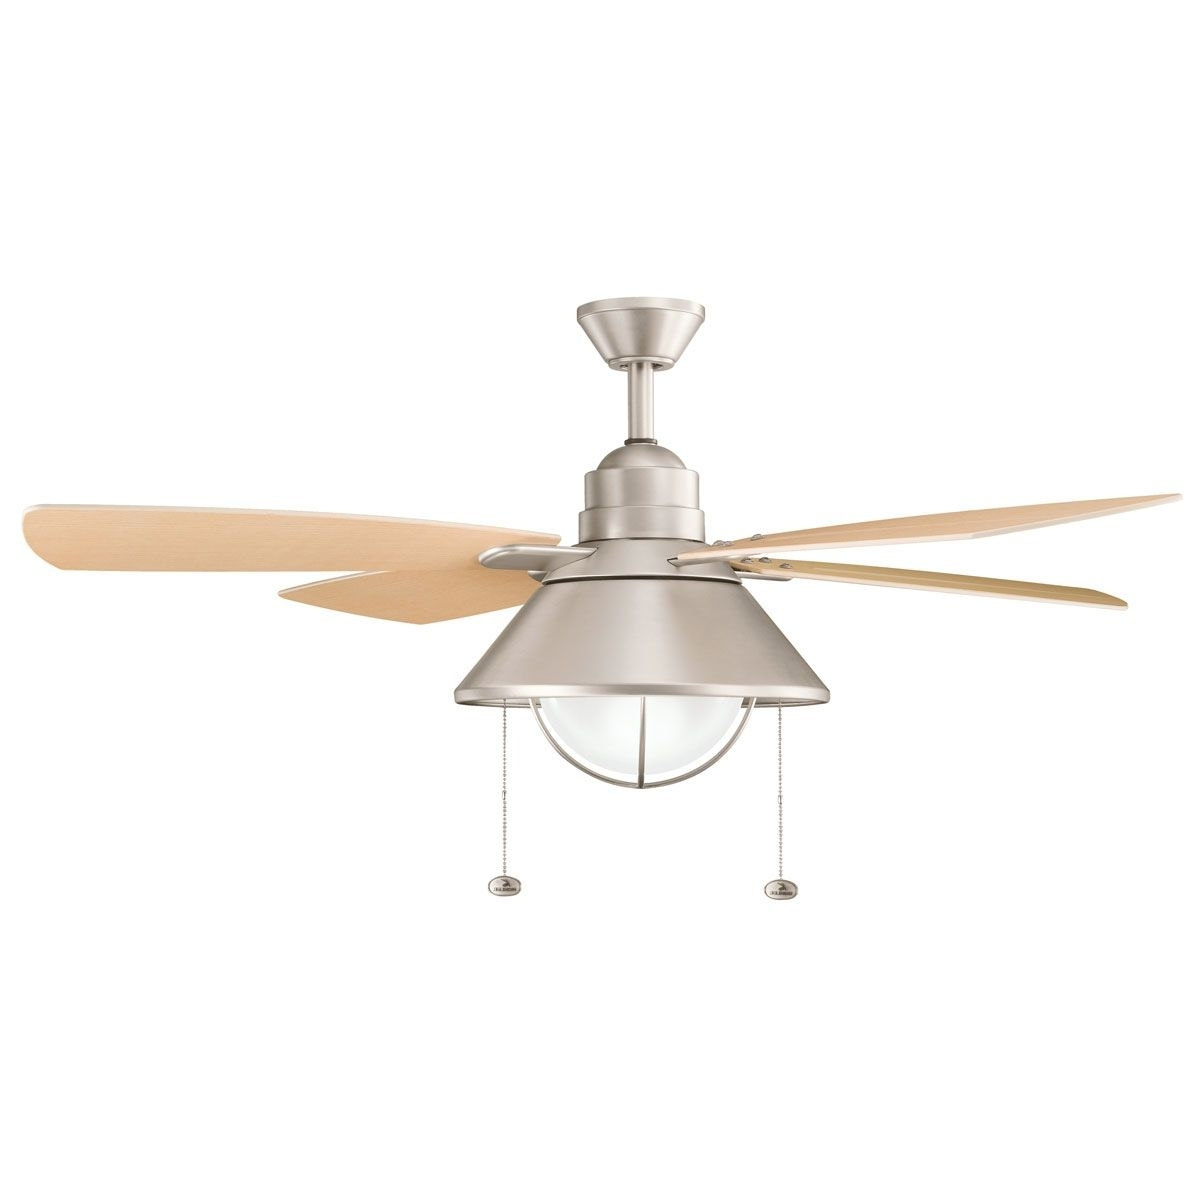 Ideas For The With Regard To Favorite Nautical Outdoor Ceiling Fans With Lights (View 7 of 20)